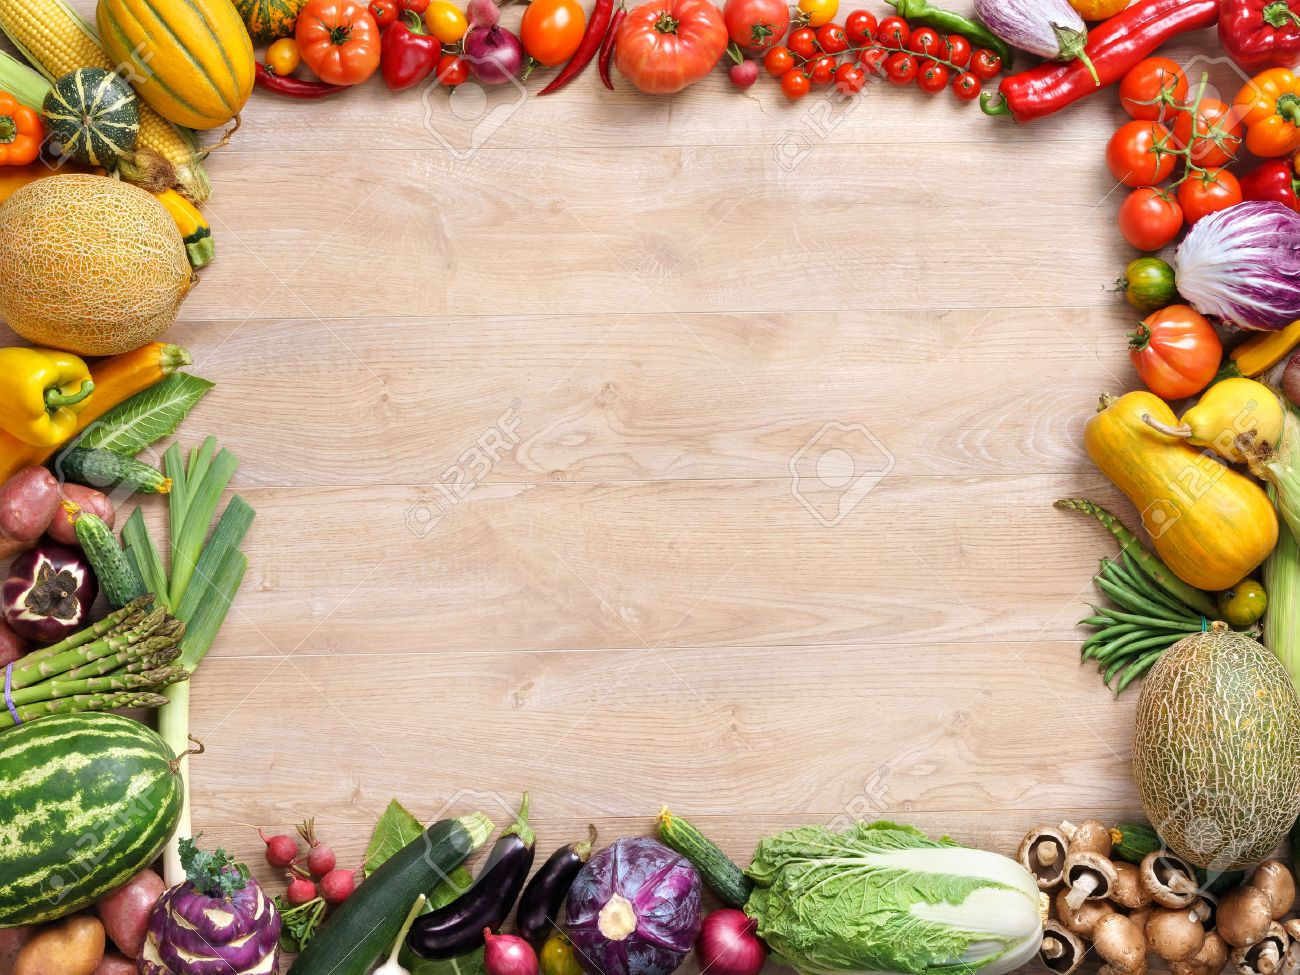 Healthy eating background, studio photography of different fruits and vegetables on wooden table - 52848964